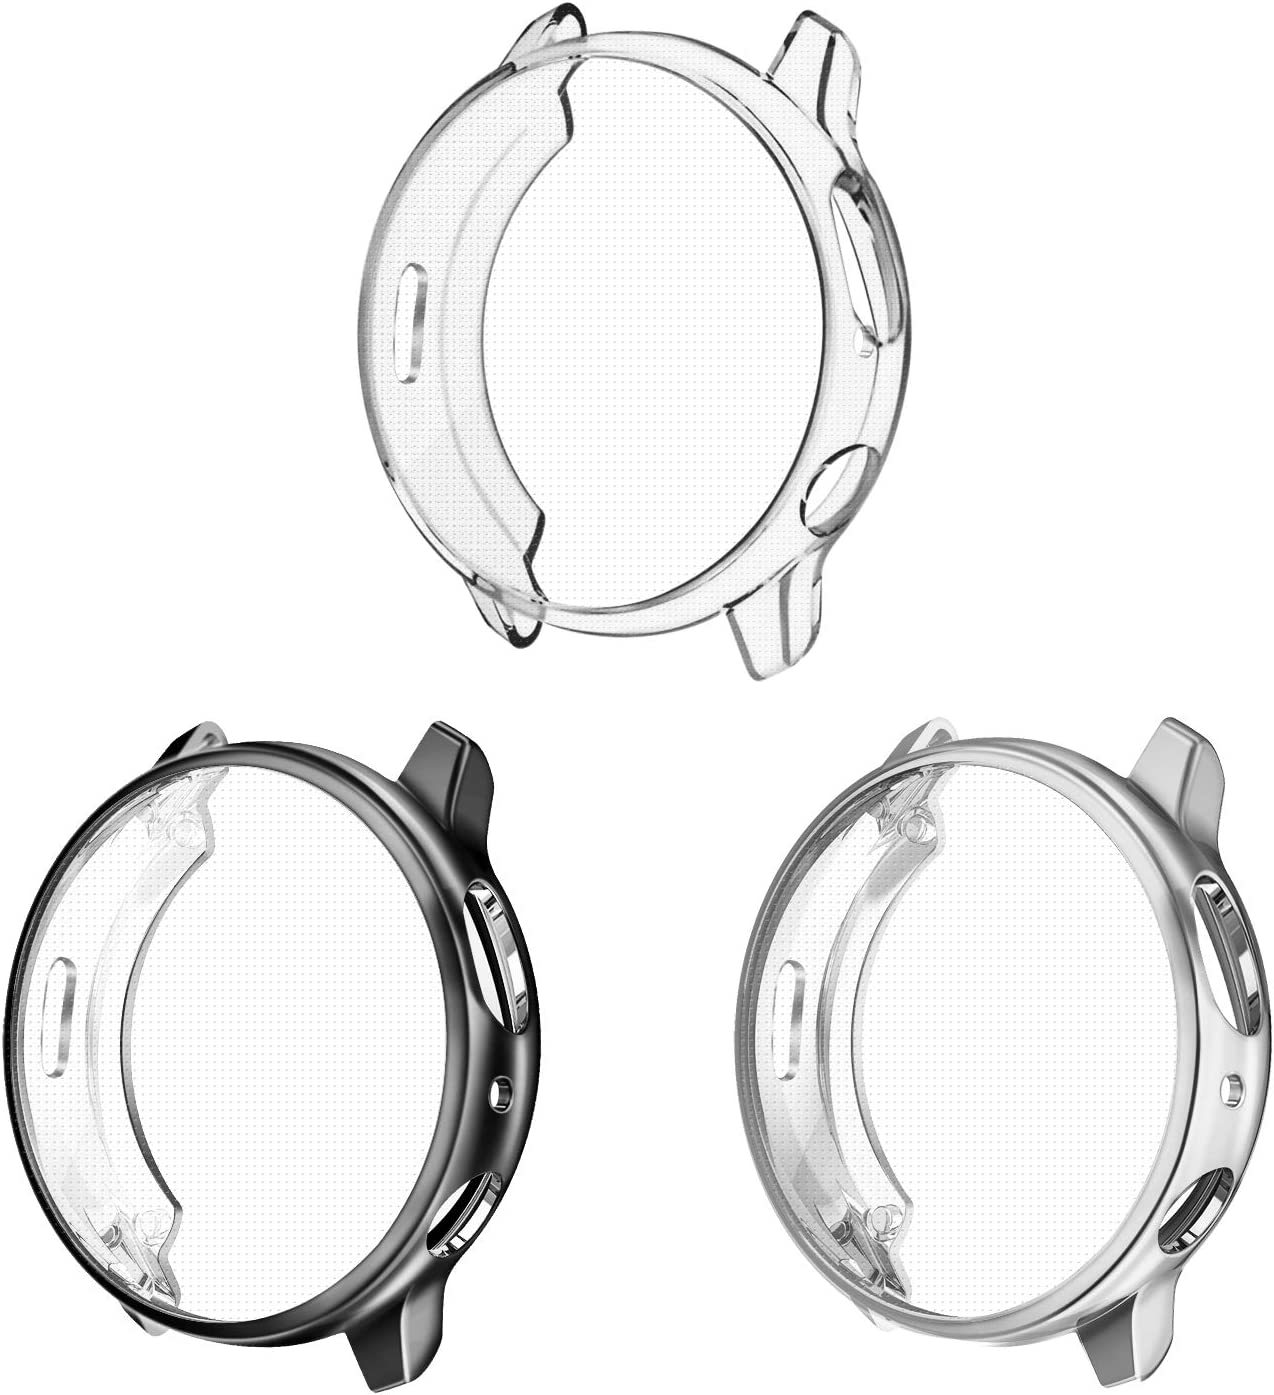 3 Pack - Fintie Case Compatible with Galaxy Watch Active2, Soft TPU Bumper Full Around Screen Protector Cover for Samsung Galaxy Watch Active 2 44mm, Black, Silver, Clear